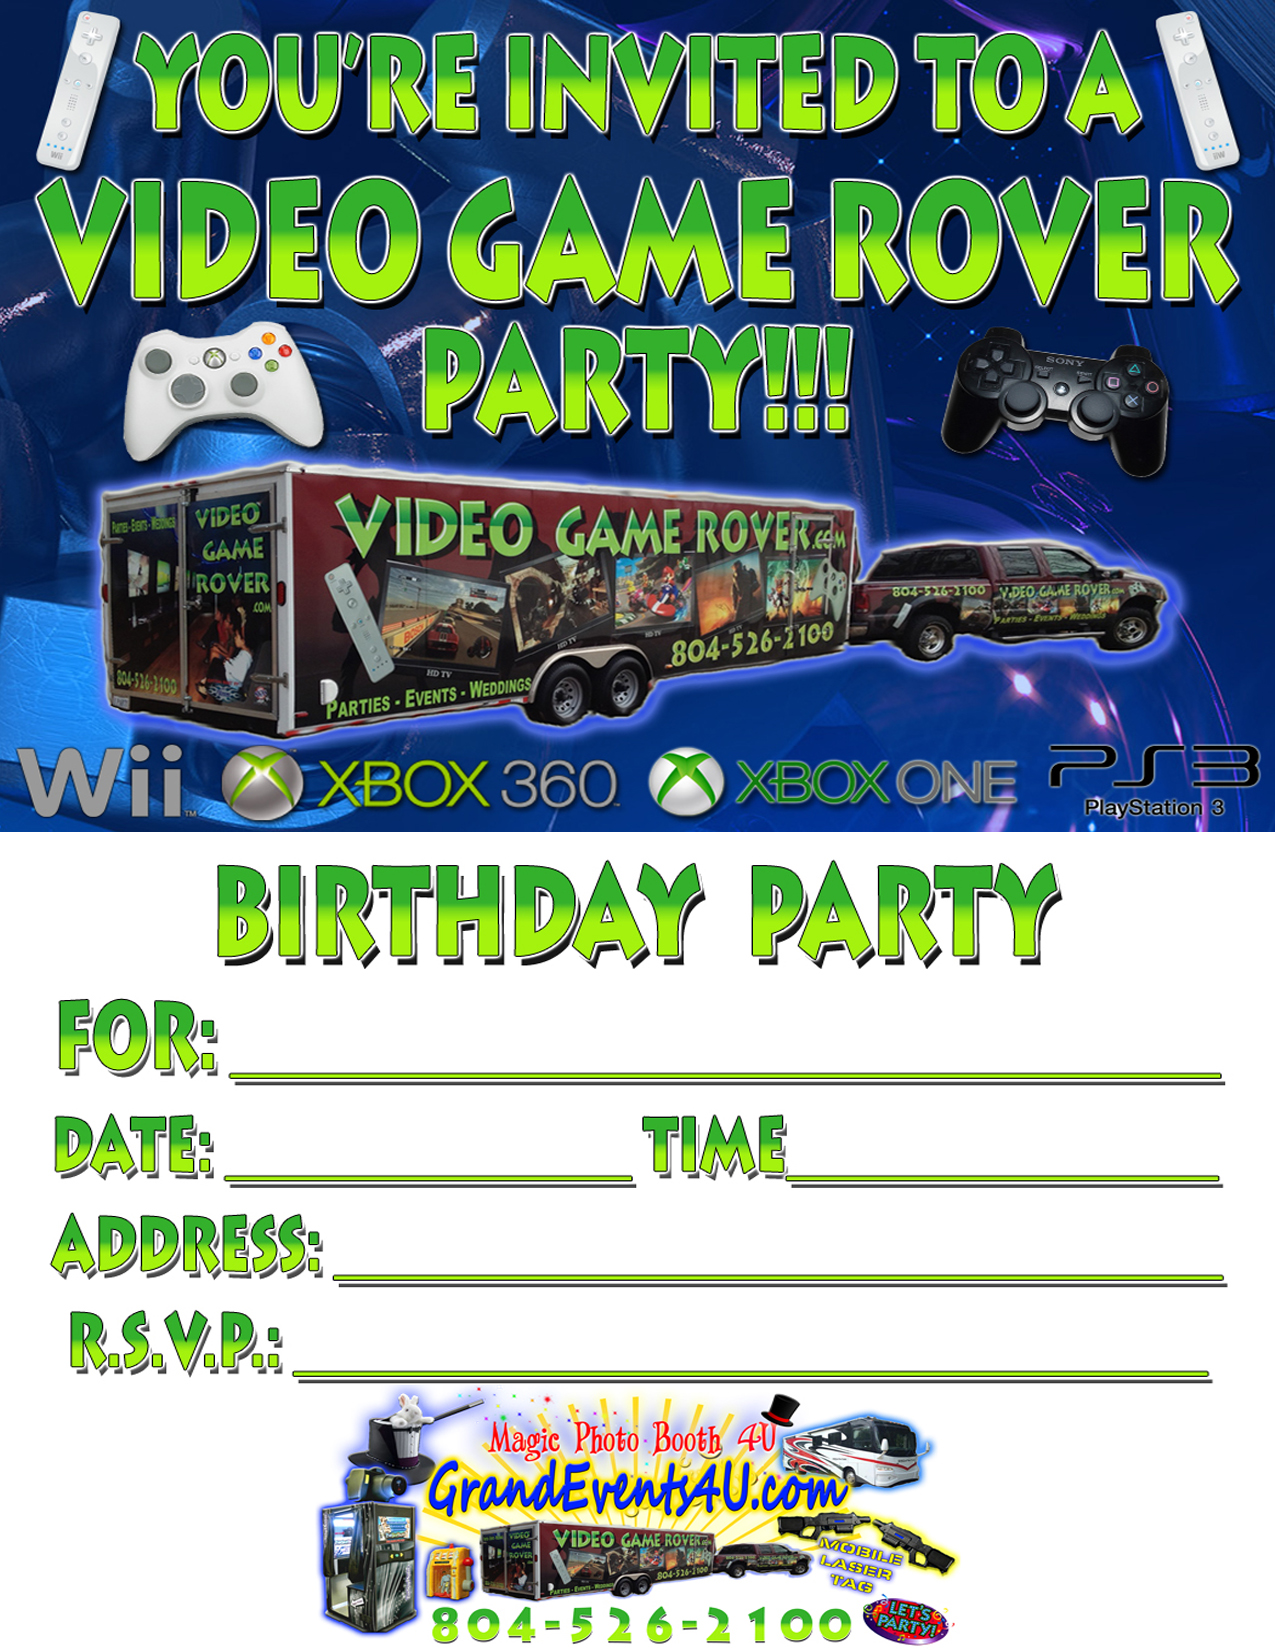 laser tag birthday party invitation template free ; Laser-Tag-Birthday-Party-Invitations-combined-with-your-creativity-will-make-this-looks-awesome-6